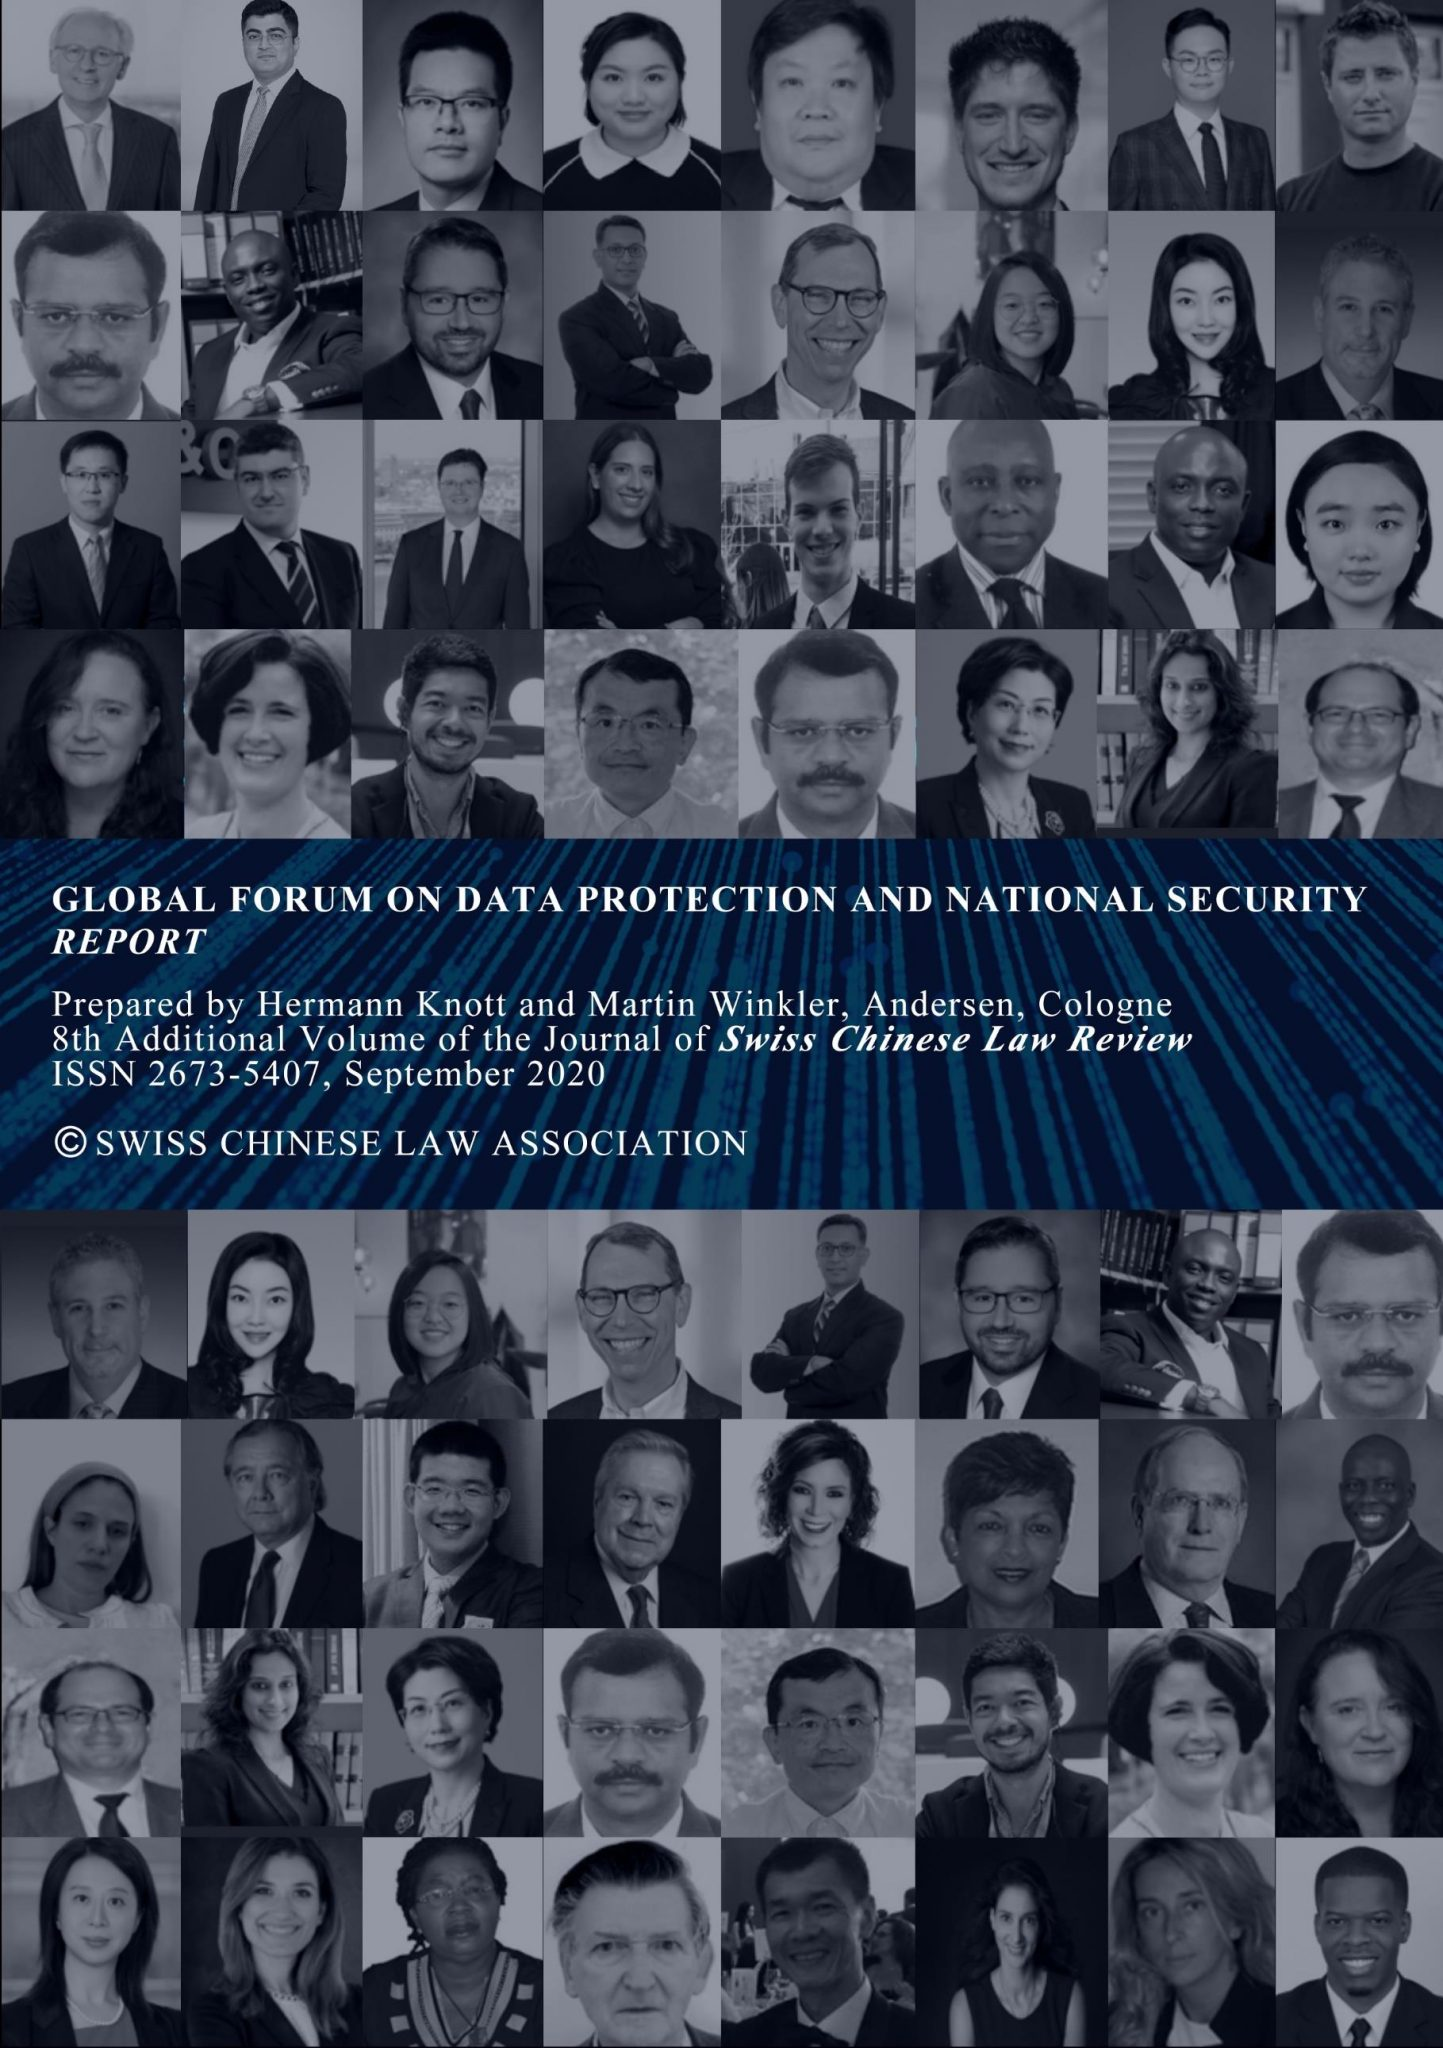 8th Forum Report on SCLA Data Protection Forum - Report final